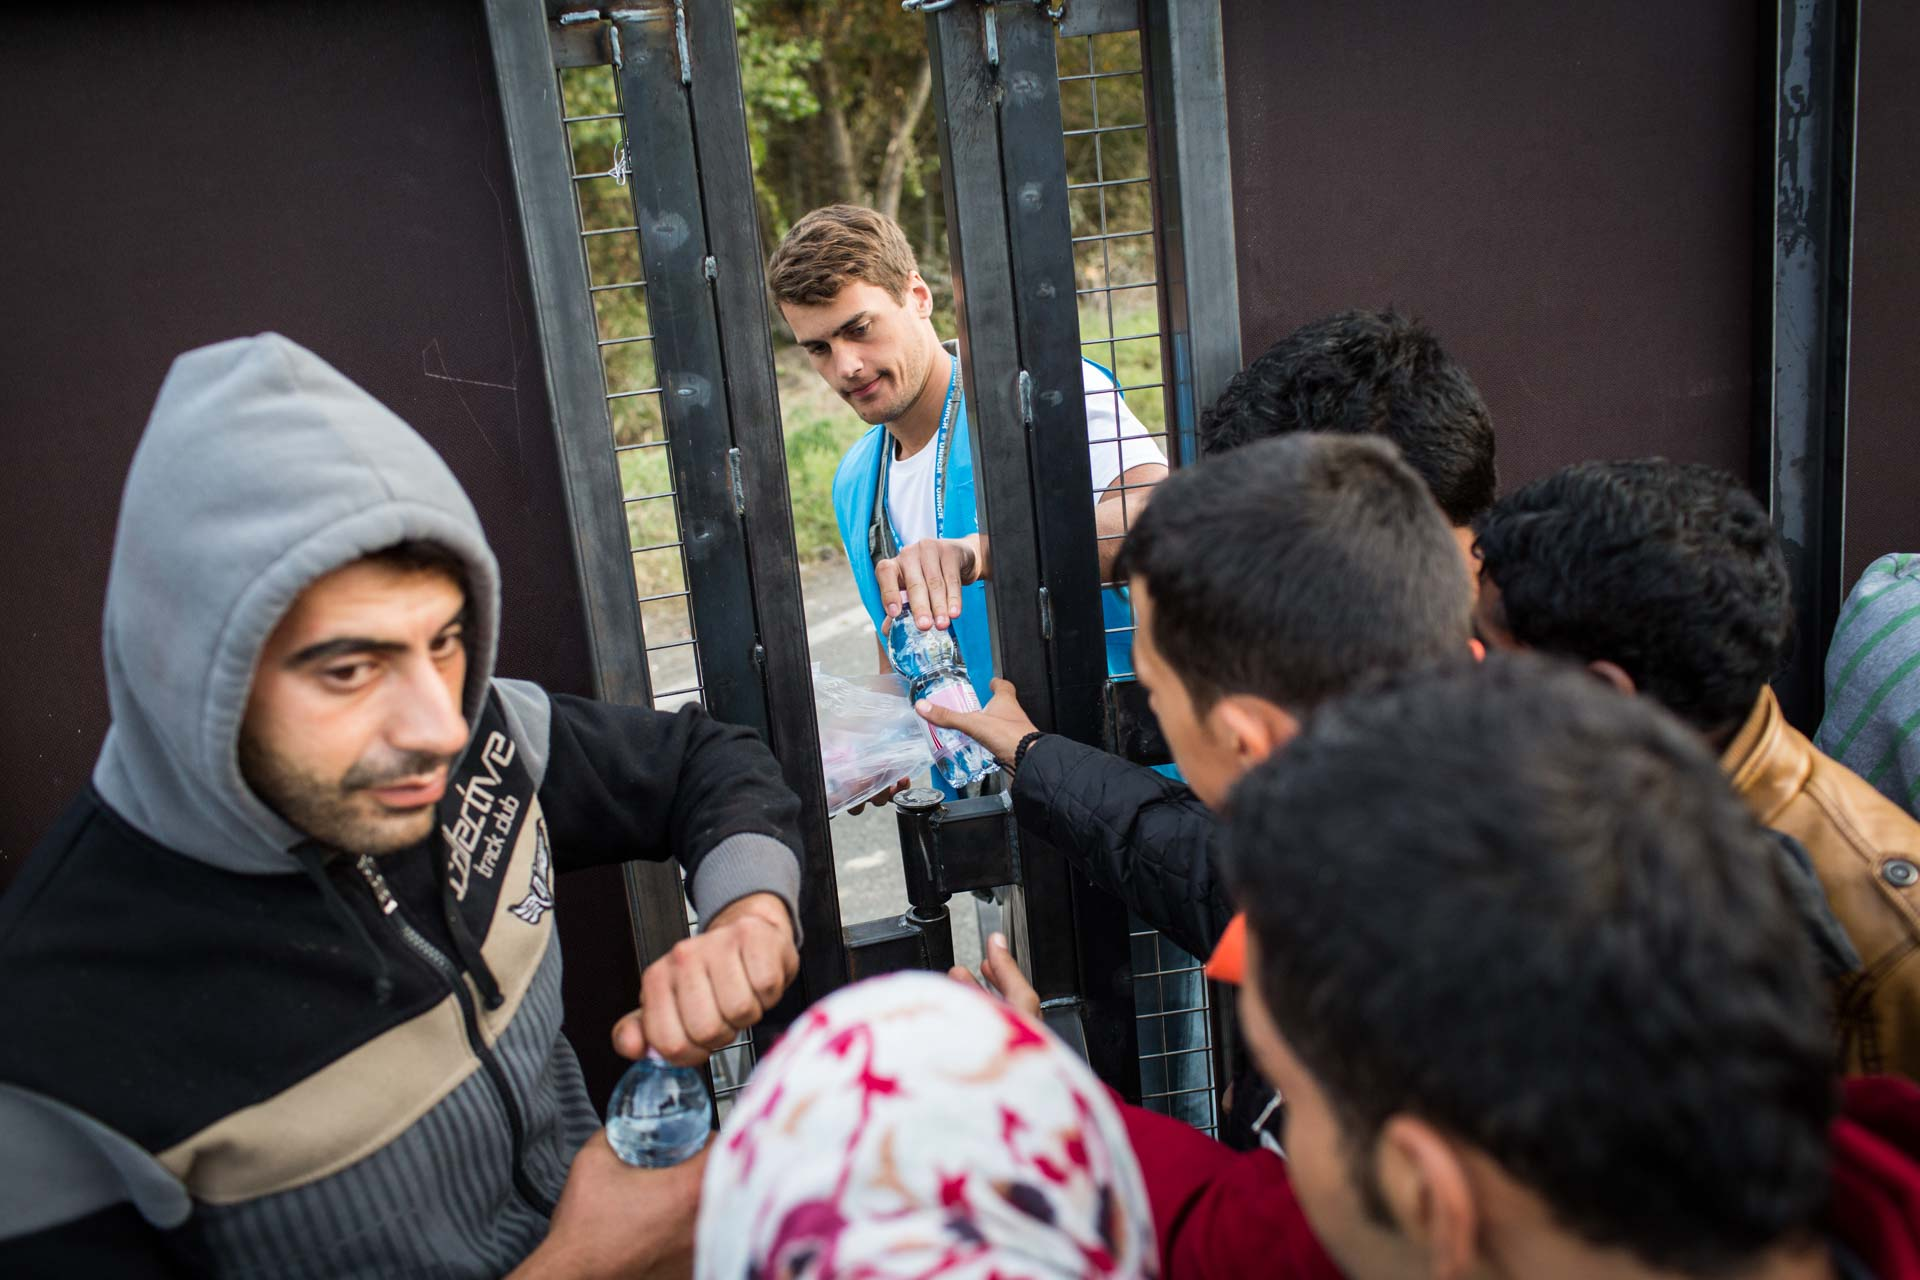 Volunteers distribute water from the Hungarian side of the fence because Serbian officials are not distributing any help on their side of the border.